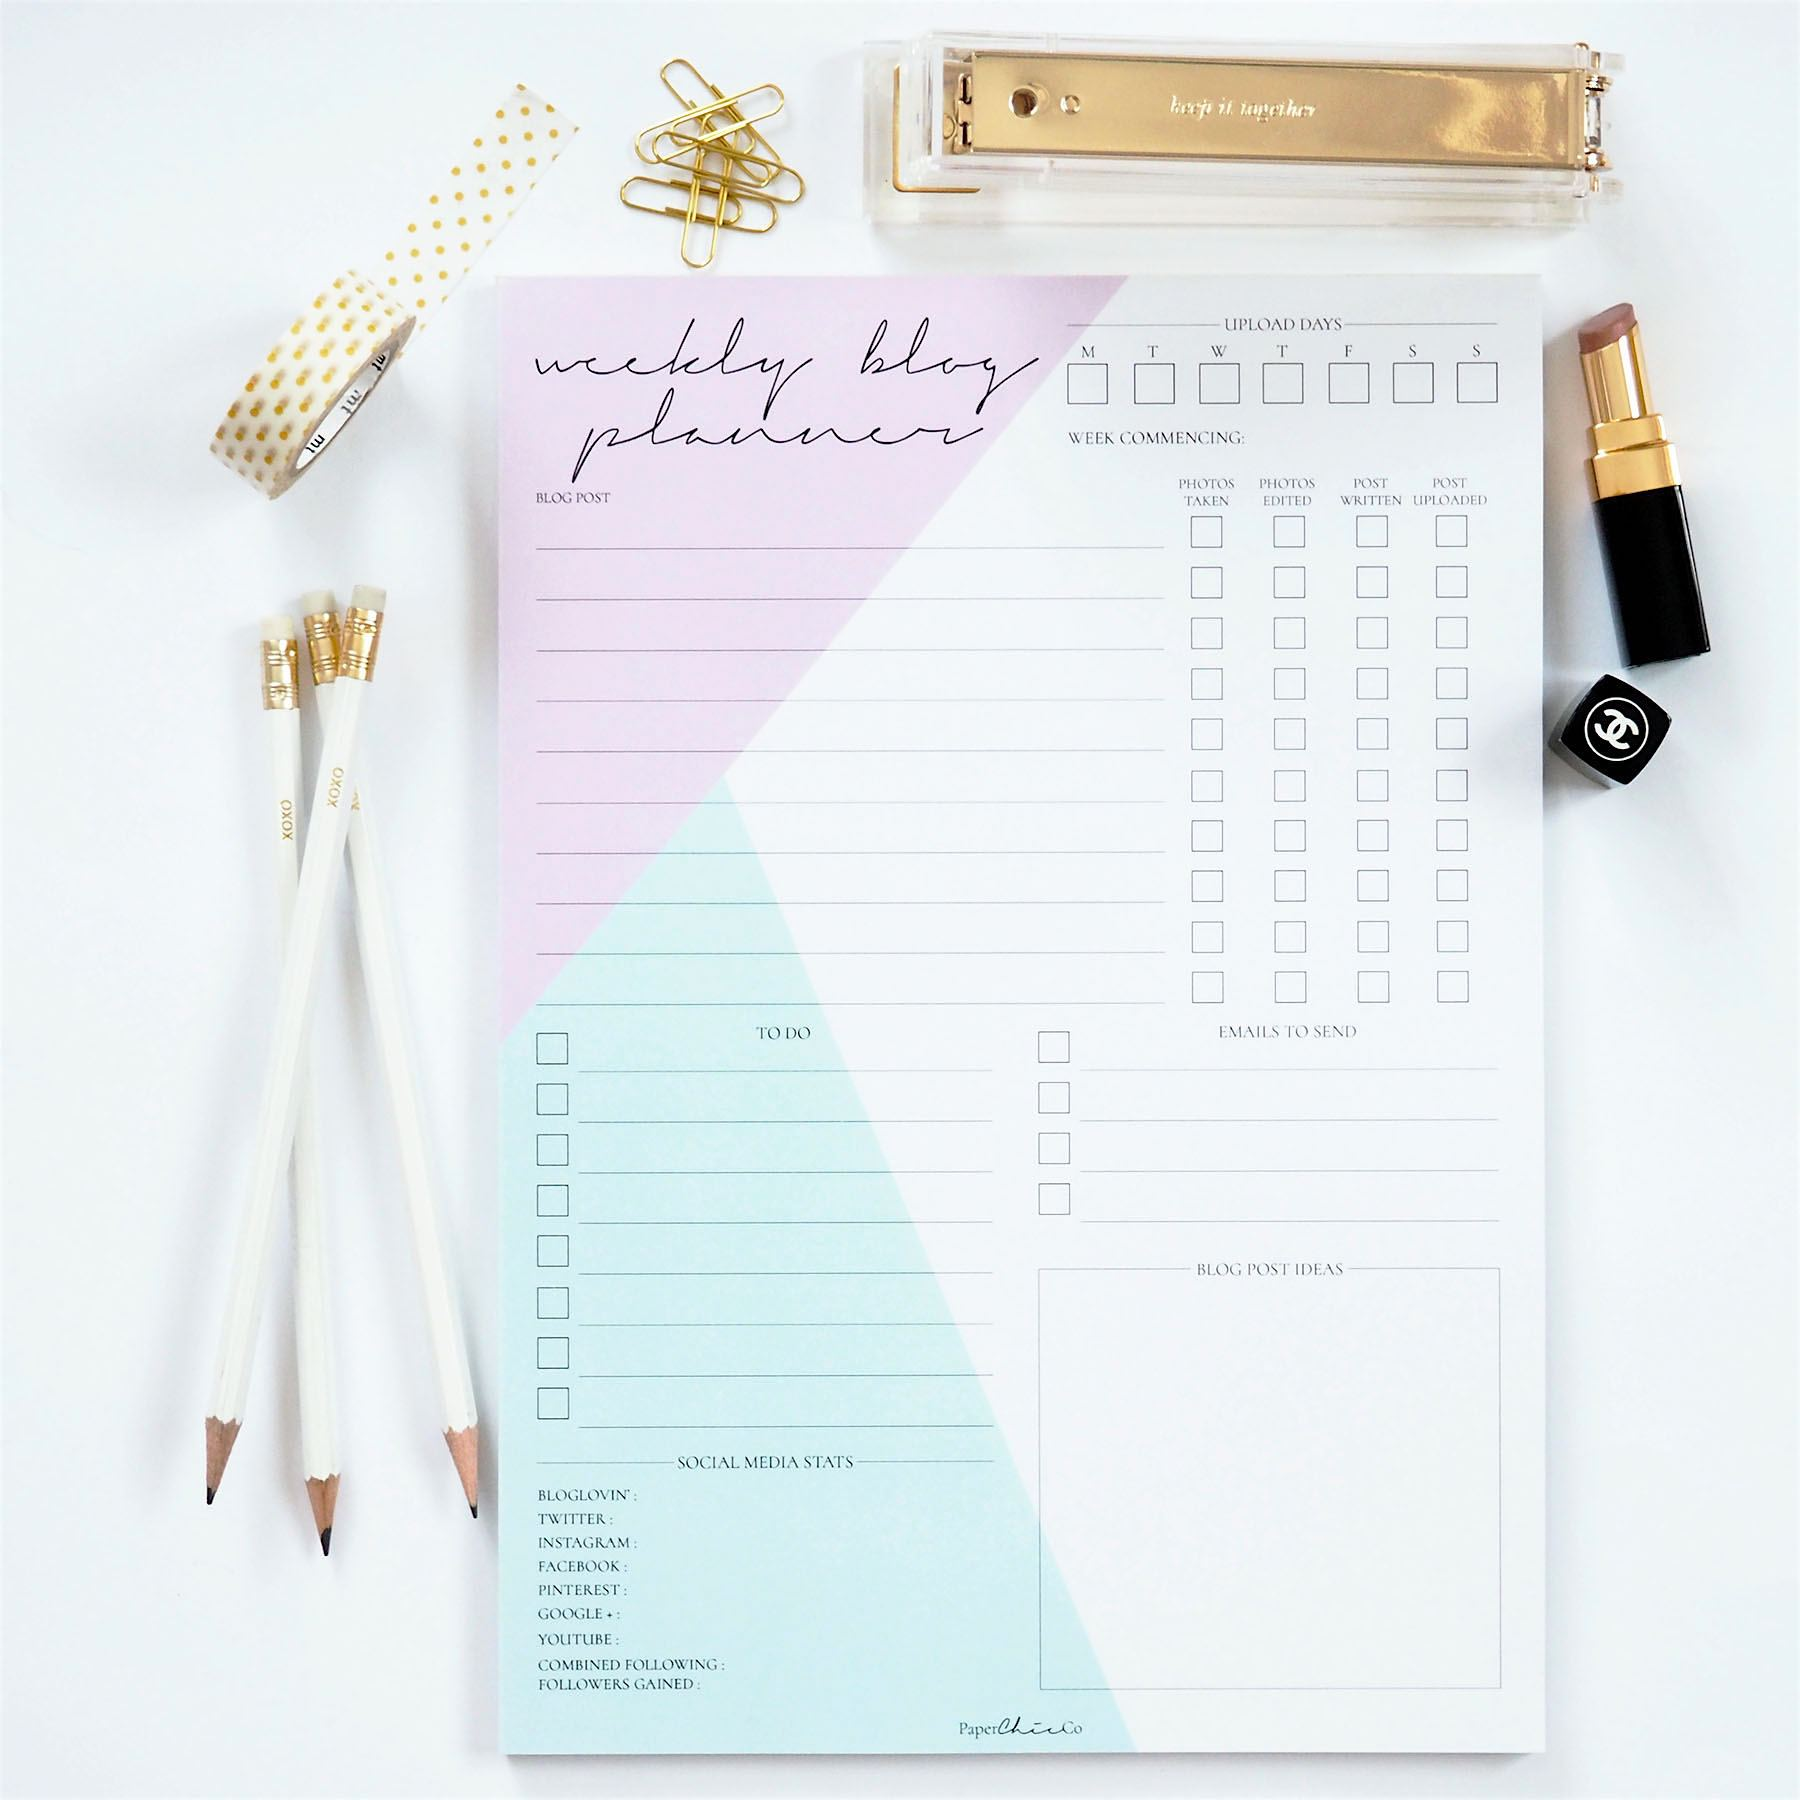 paperchicco stationery shop